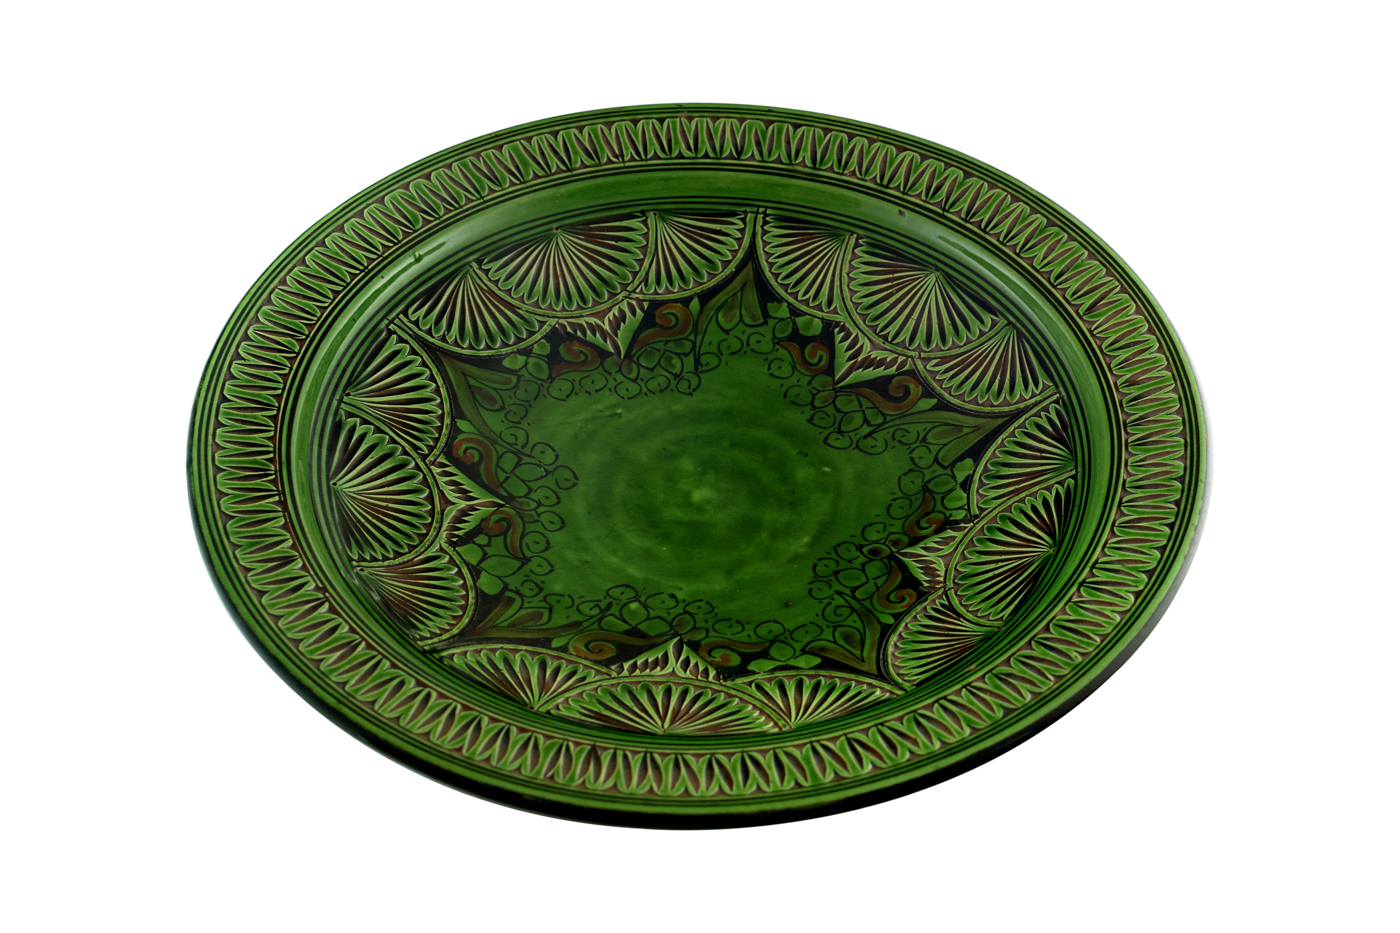 Moroccan ceramic plate carved with floral arabesque designs- green